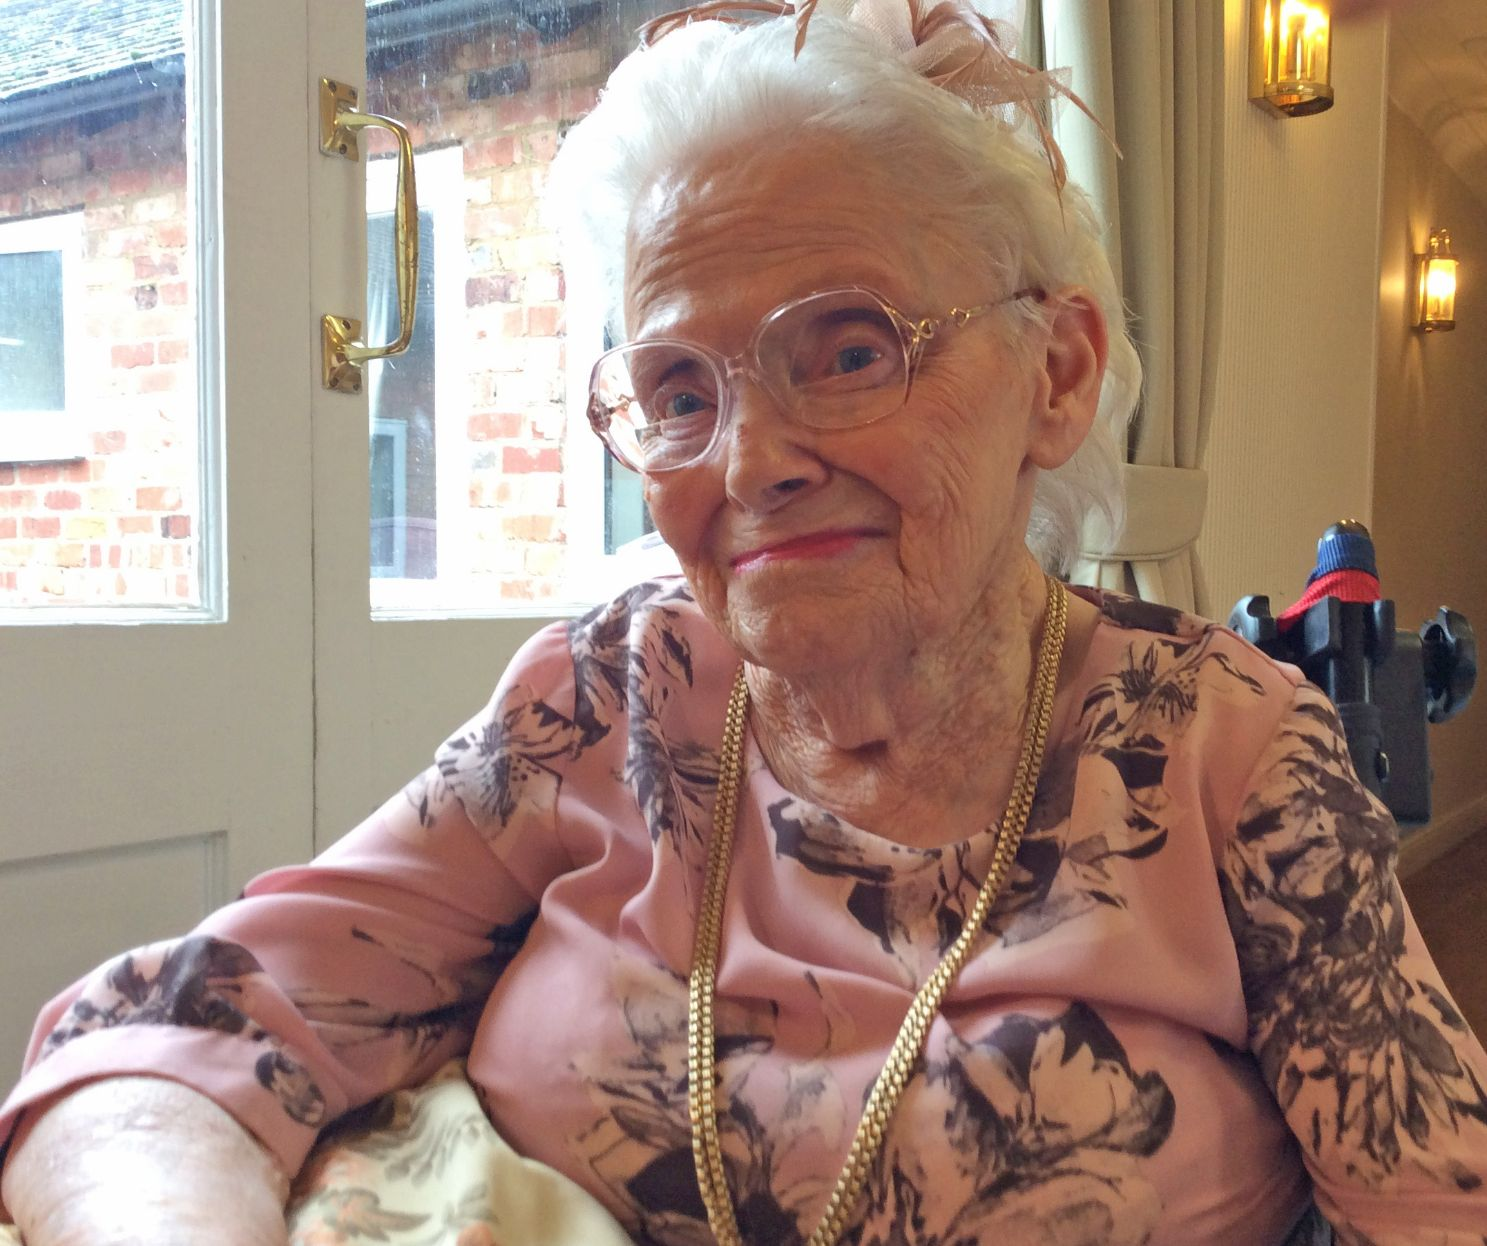 Tewkesbury Fields Care Home in Gloucestershire make Joyce's wish to be pampered come true